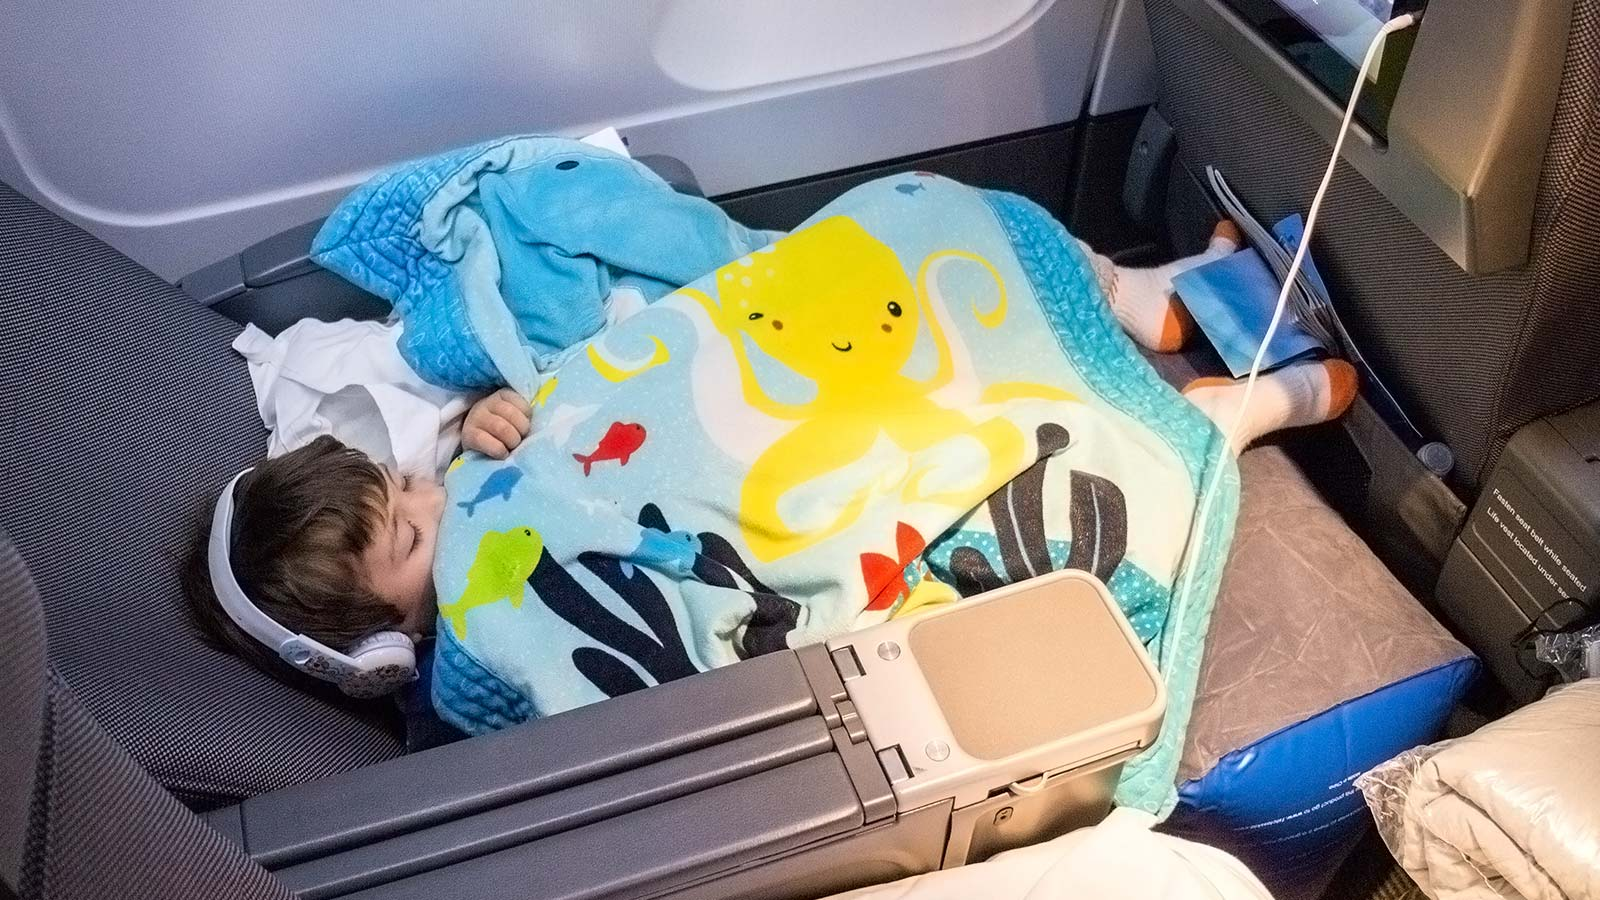 The 1st Class Kid Travel Pillow is an inflatable footrest for airplanes that fits in the space between seats in order to create a seamless reclining area for children to fly legs up. There are things that users need to know about flying with an airplane leg rest and we lay out everything we learned from our experience.